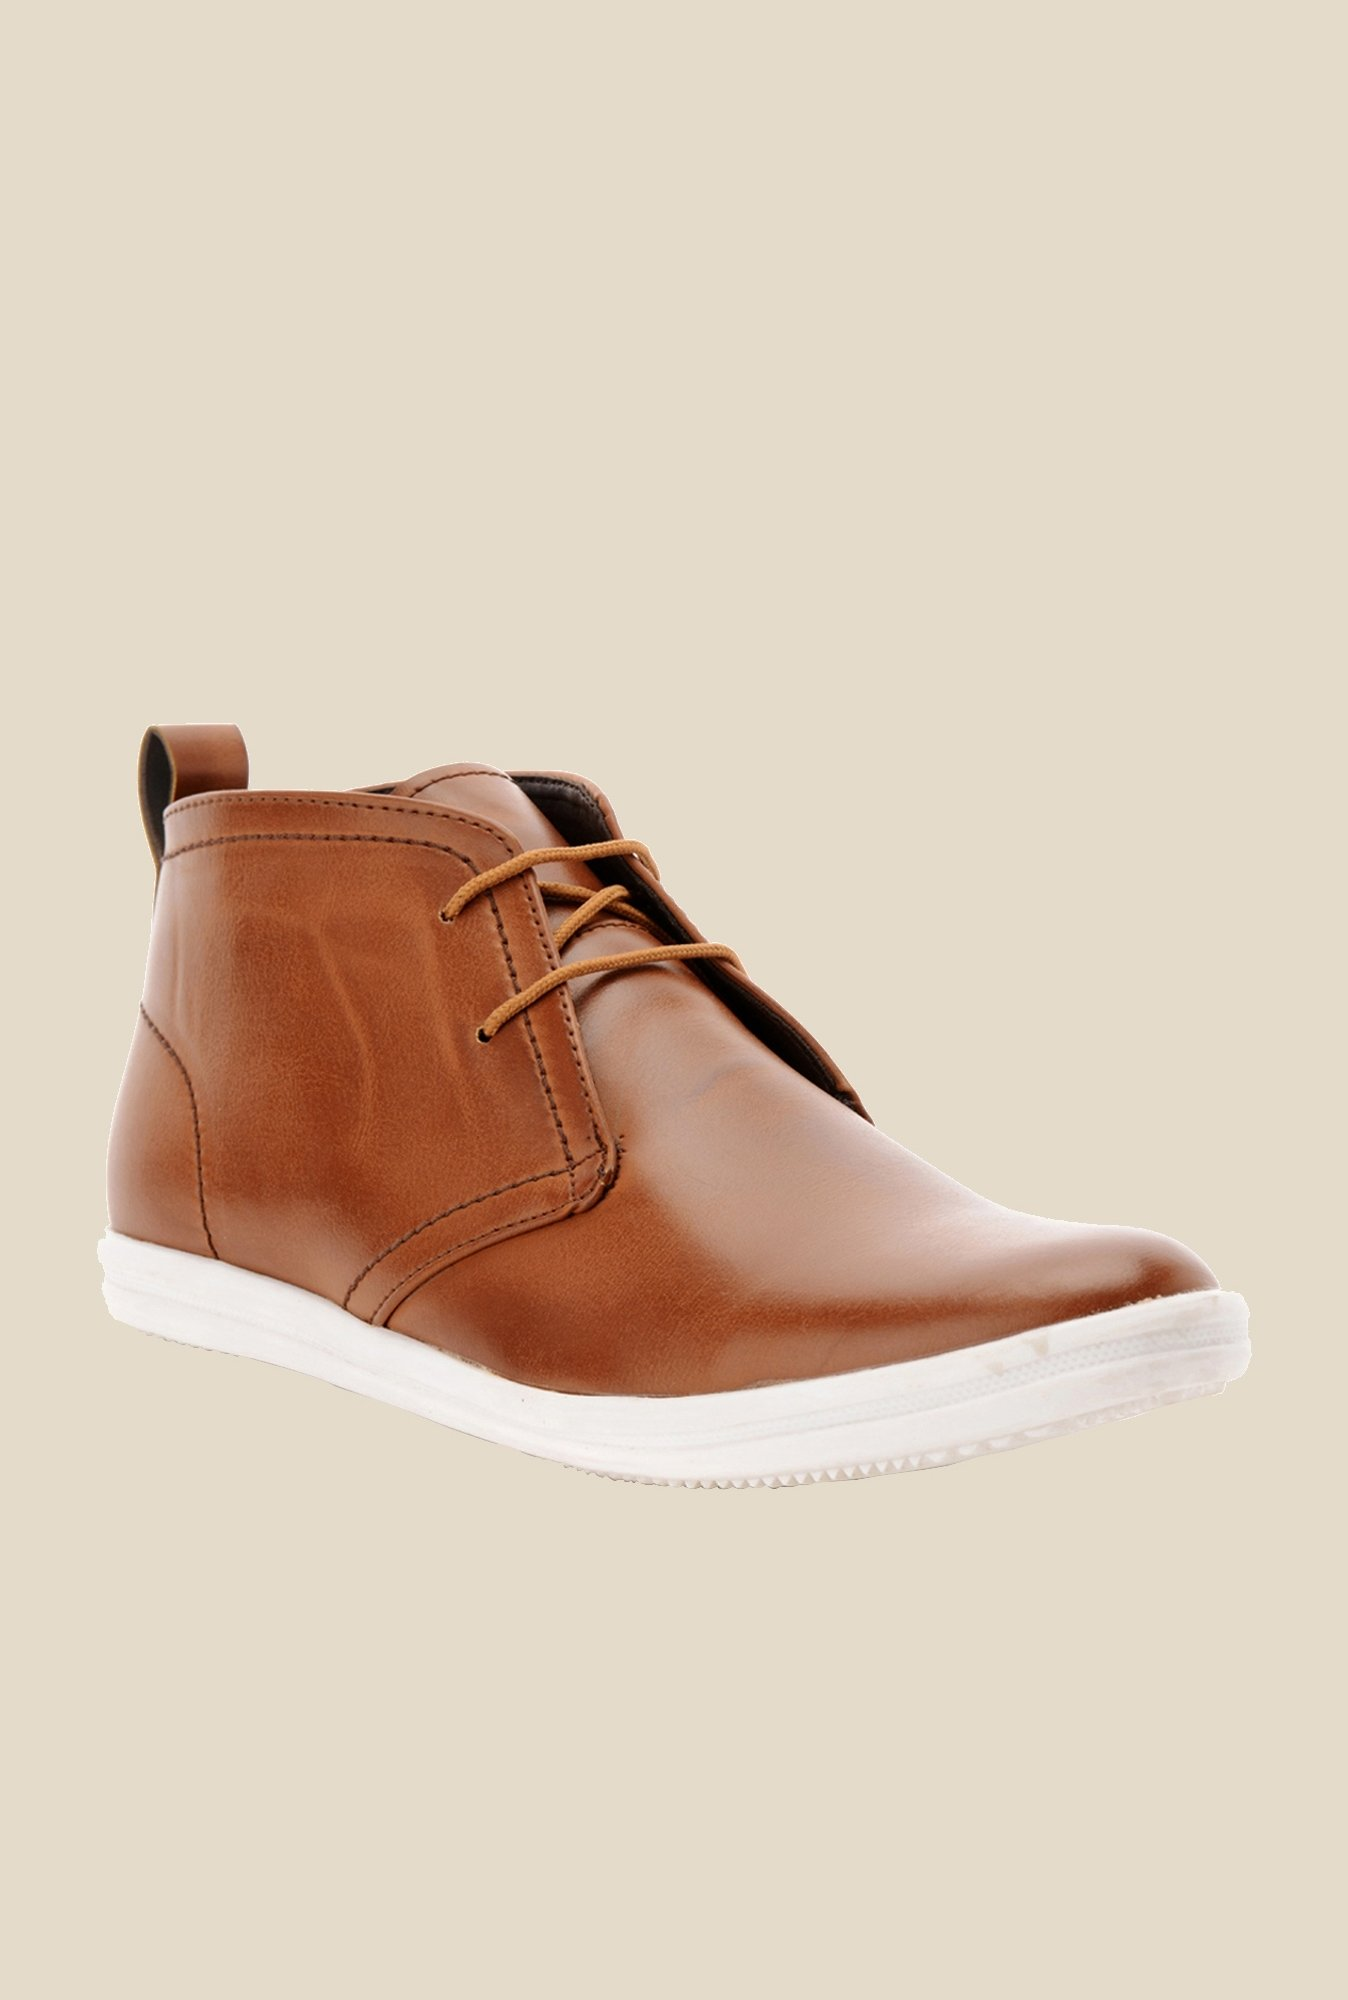 Bruno Manetti Dark Tan Chukka Shoes